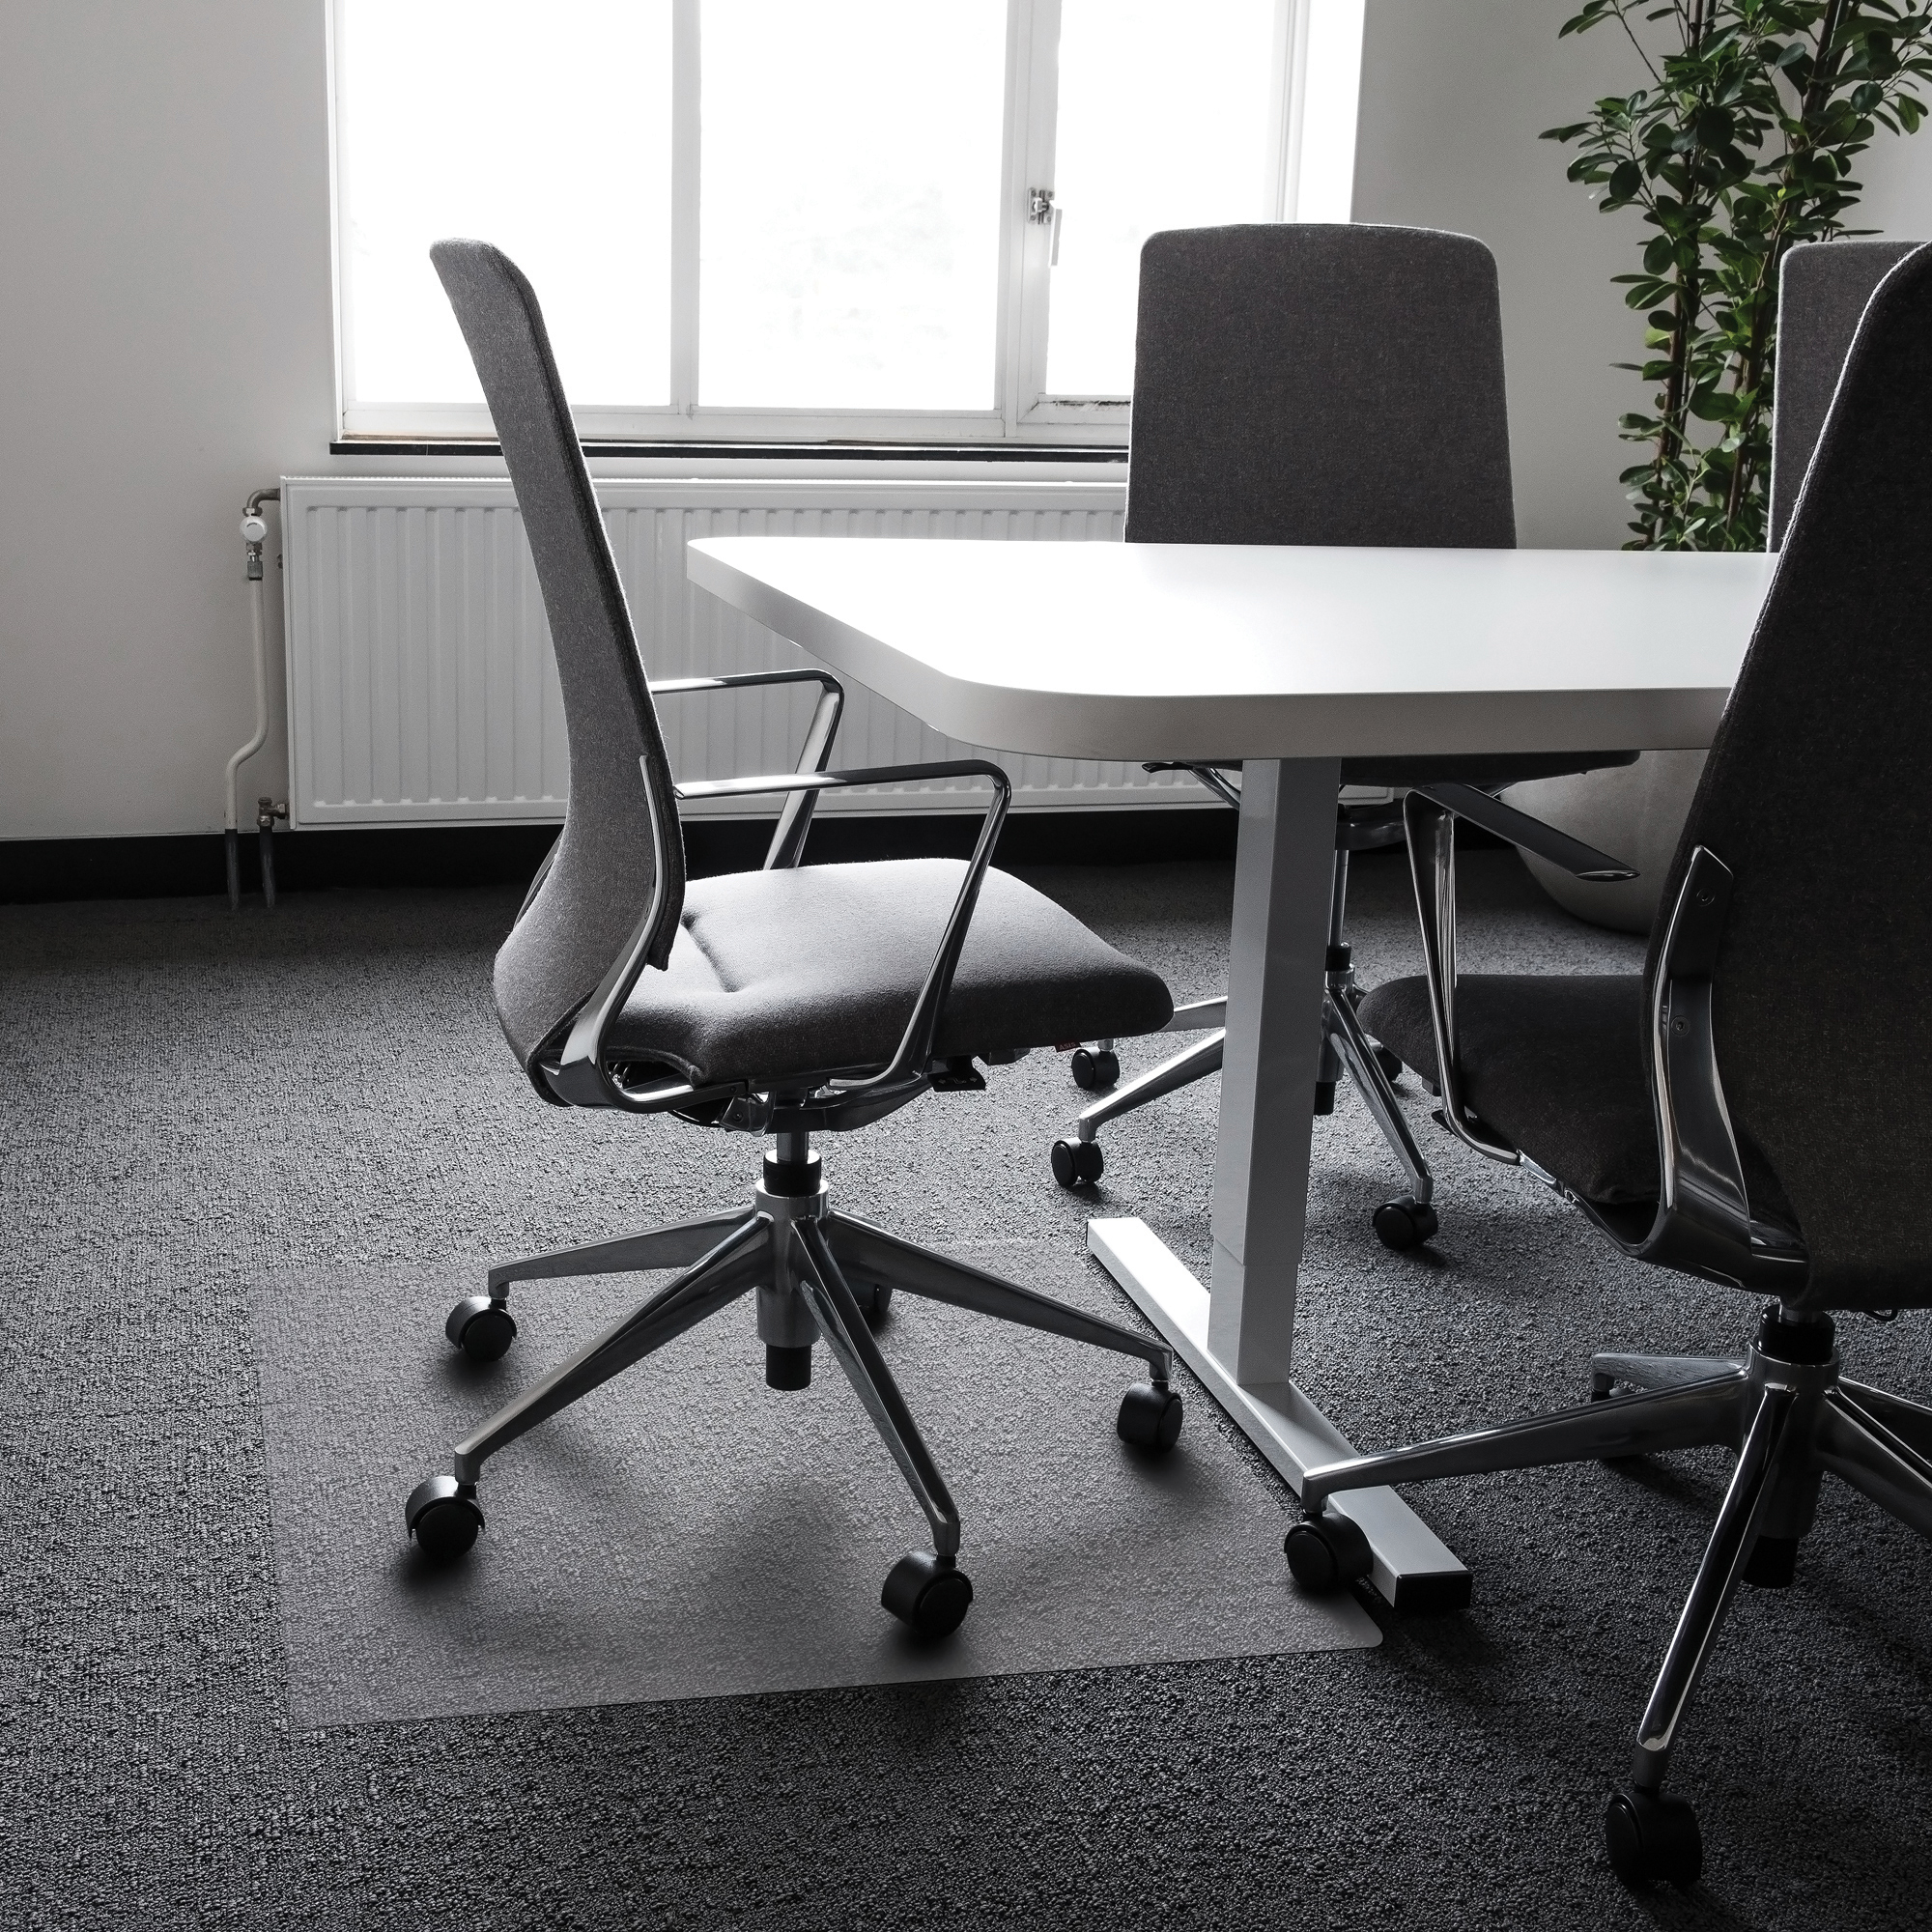 Cleartex Ultimat Chair Mat Polycarbonate Contoured For Carpet Protection 990x1250mm Clear Ref FC119923SR